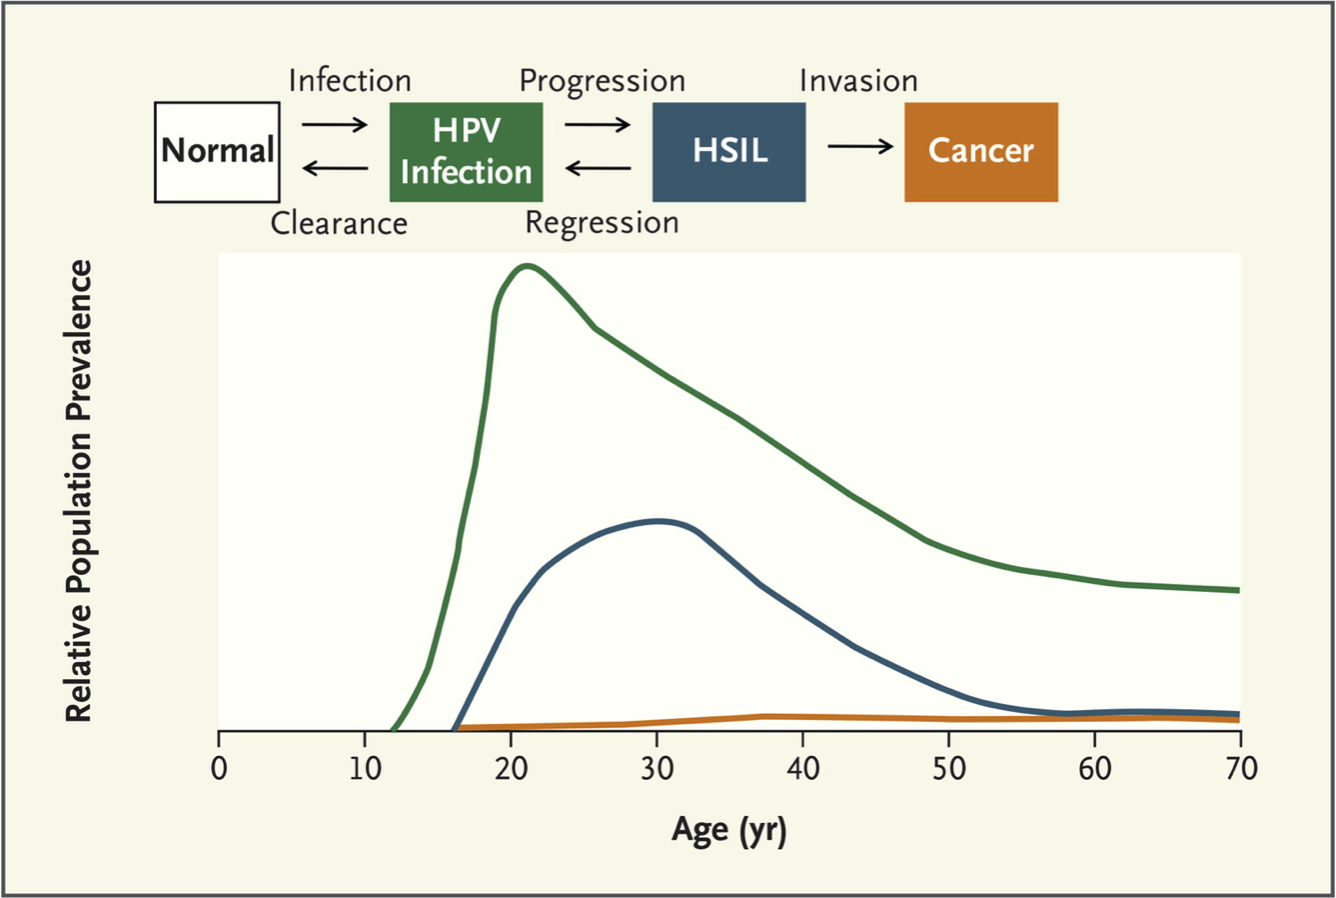 hpv infection treatment guidelines